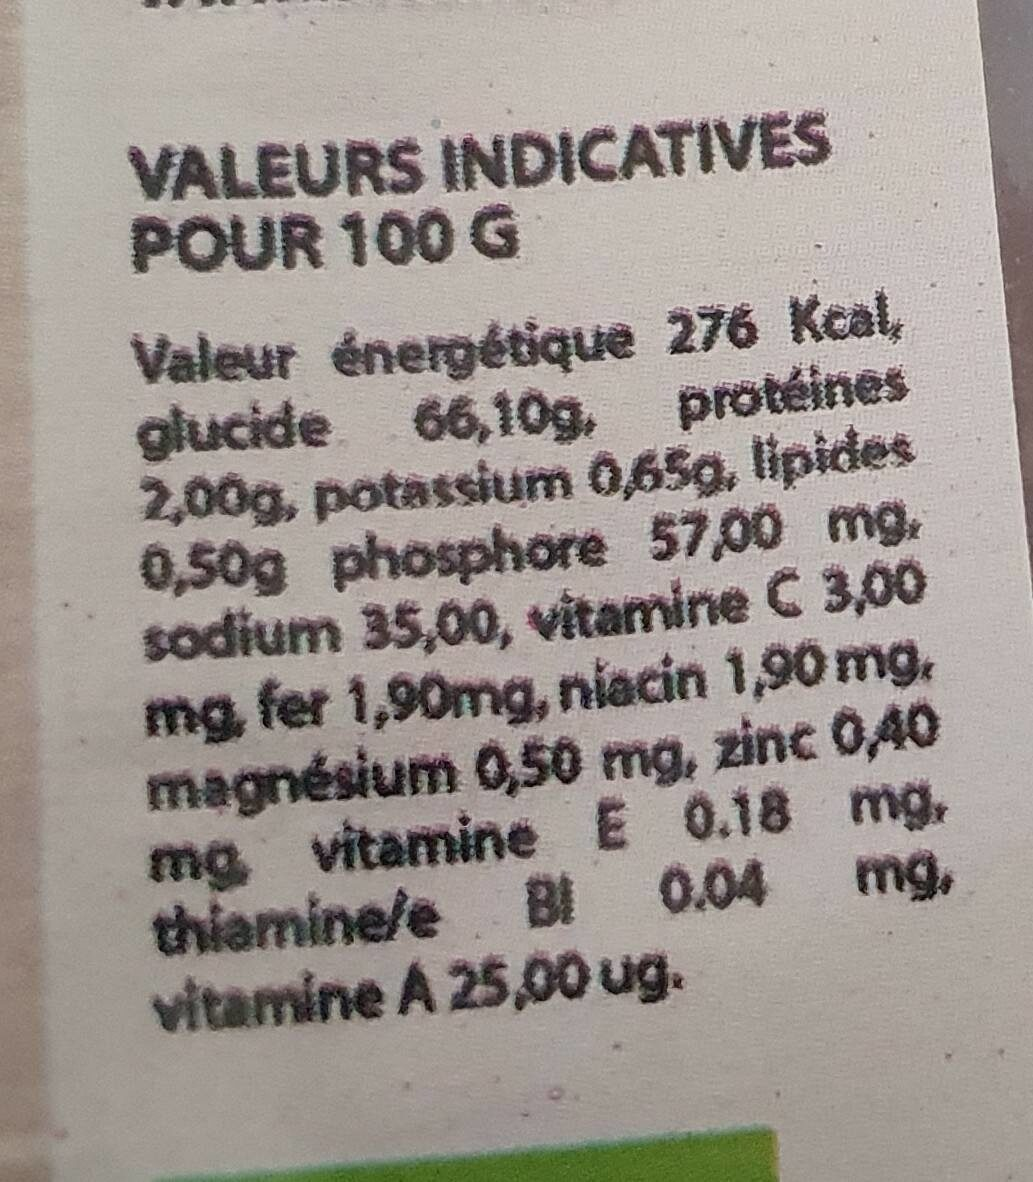 Dattes bio - Nutrition facts - fr